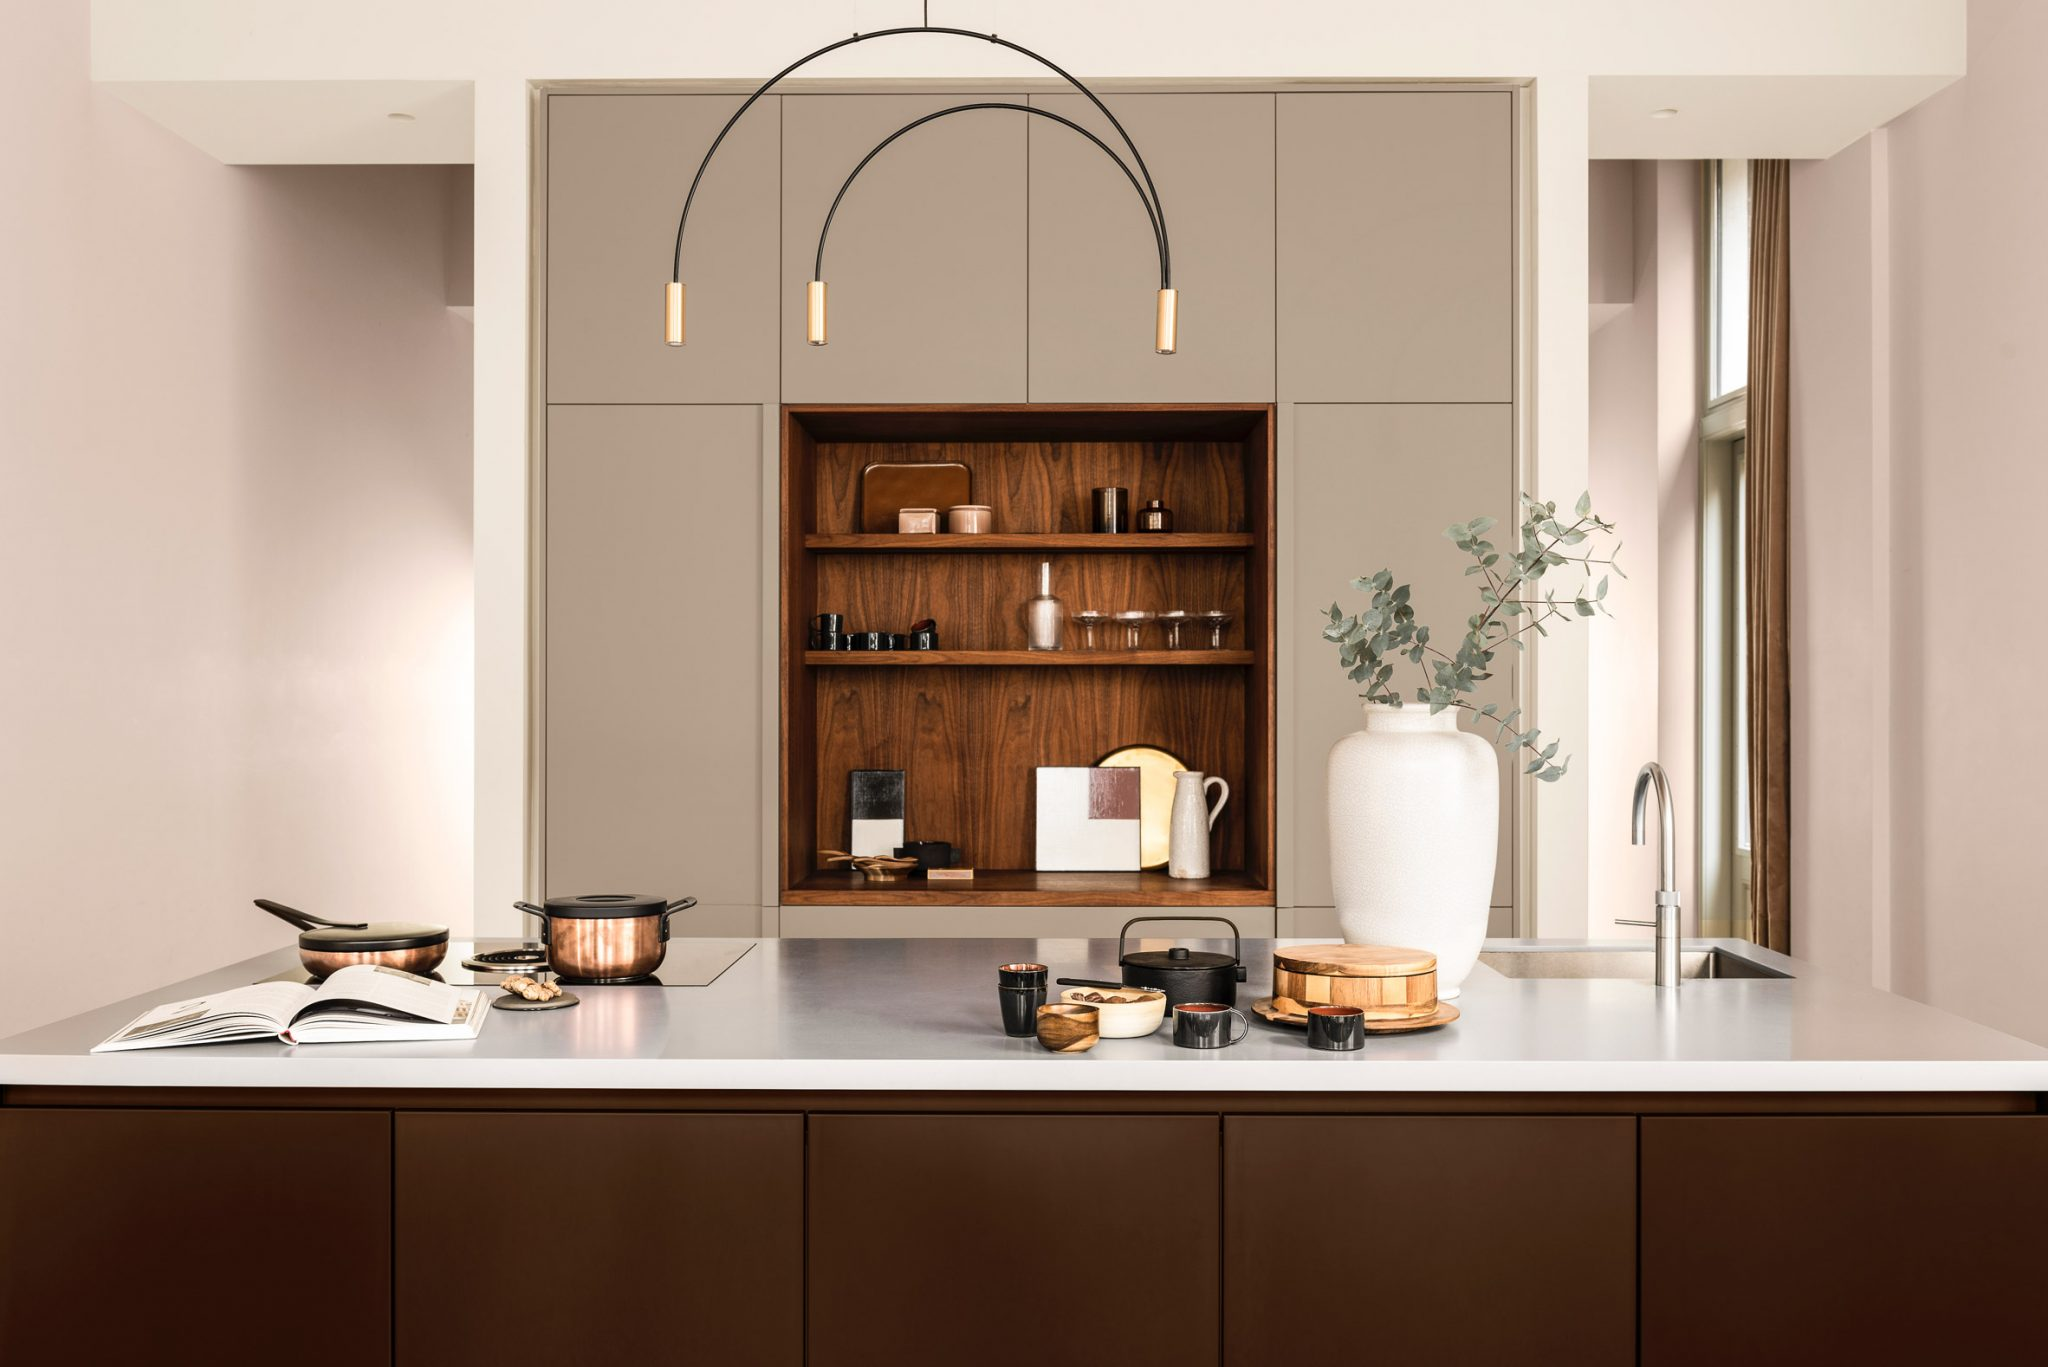 AkzoNobel Color of the Year 2021 | Brave Ground Kitchen cabinet color